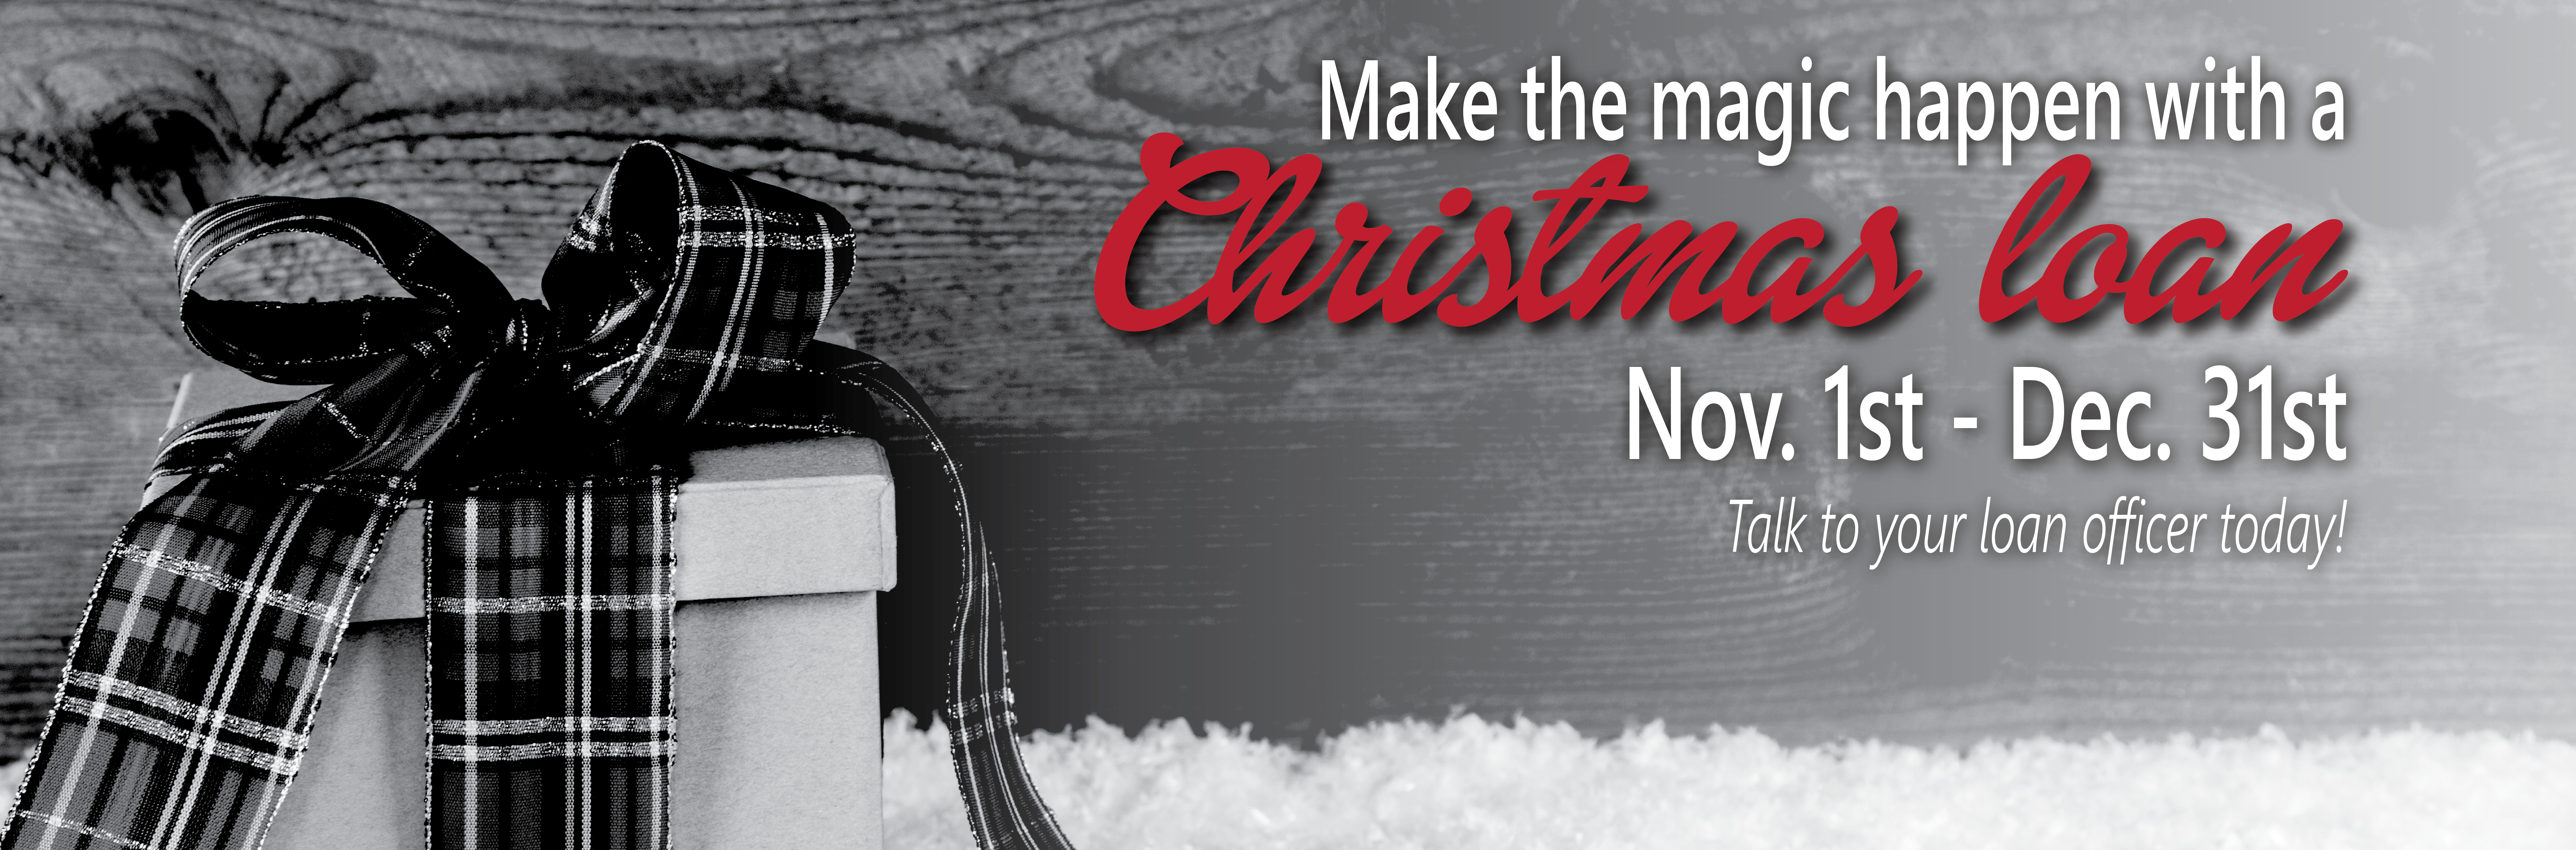 Christmas Loans - Call your loan officer today!